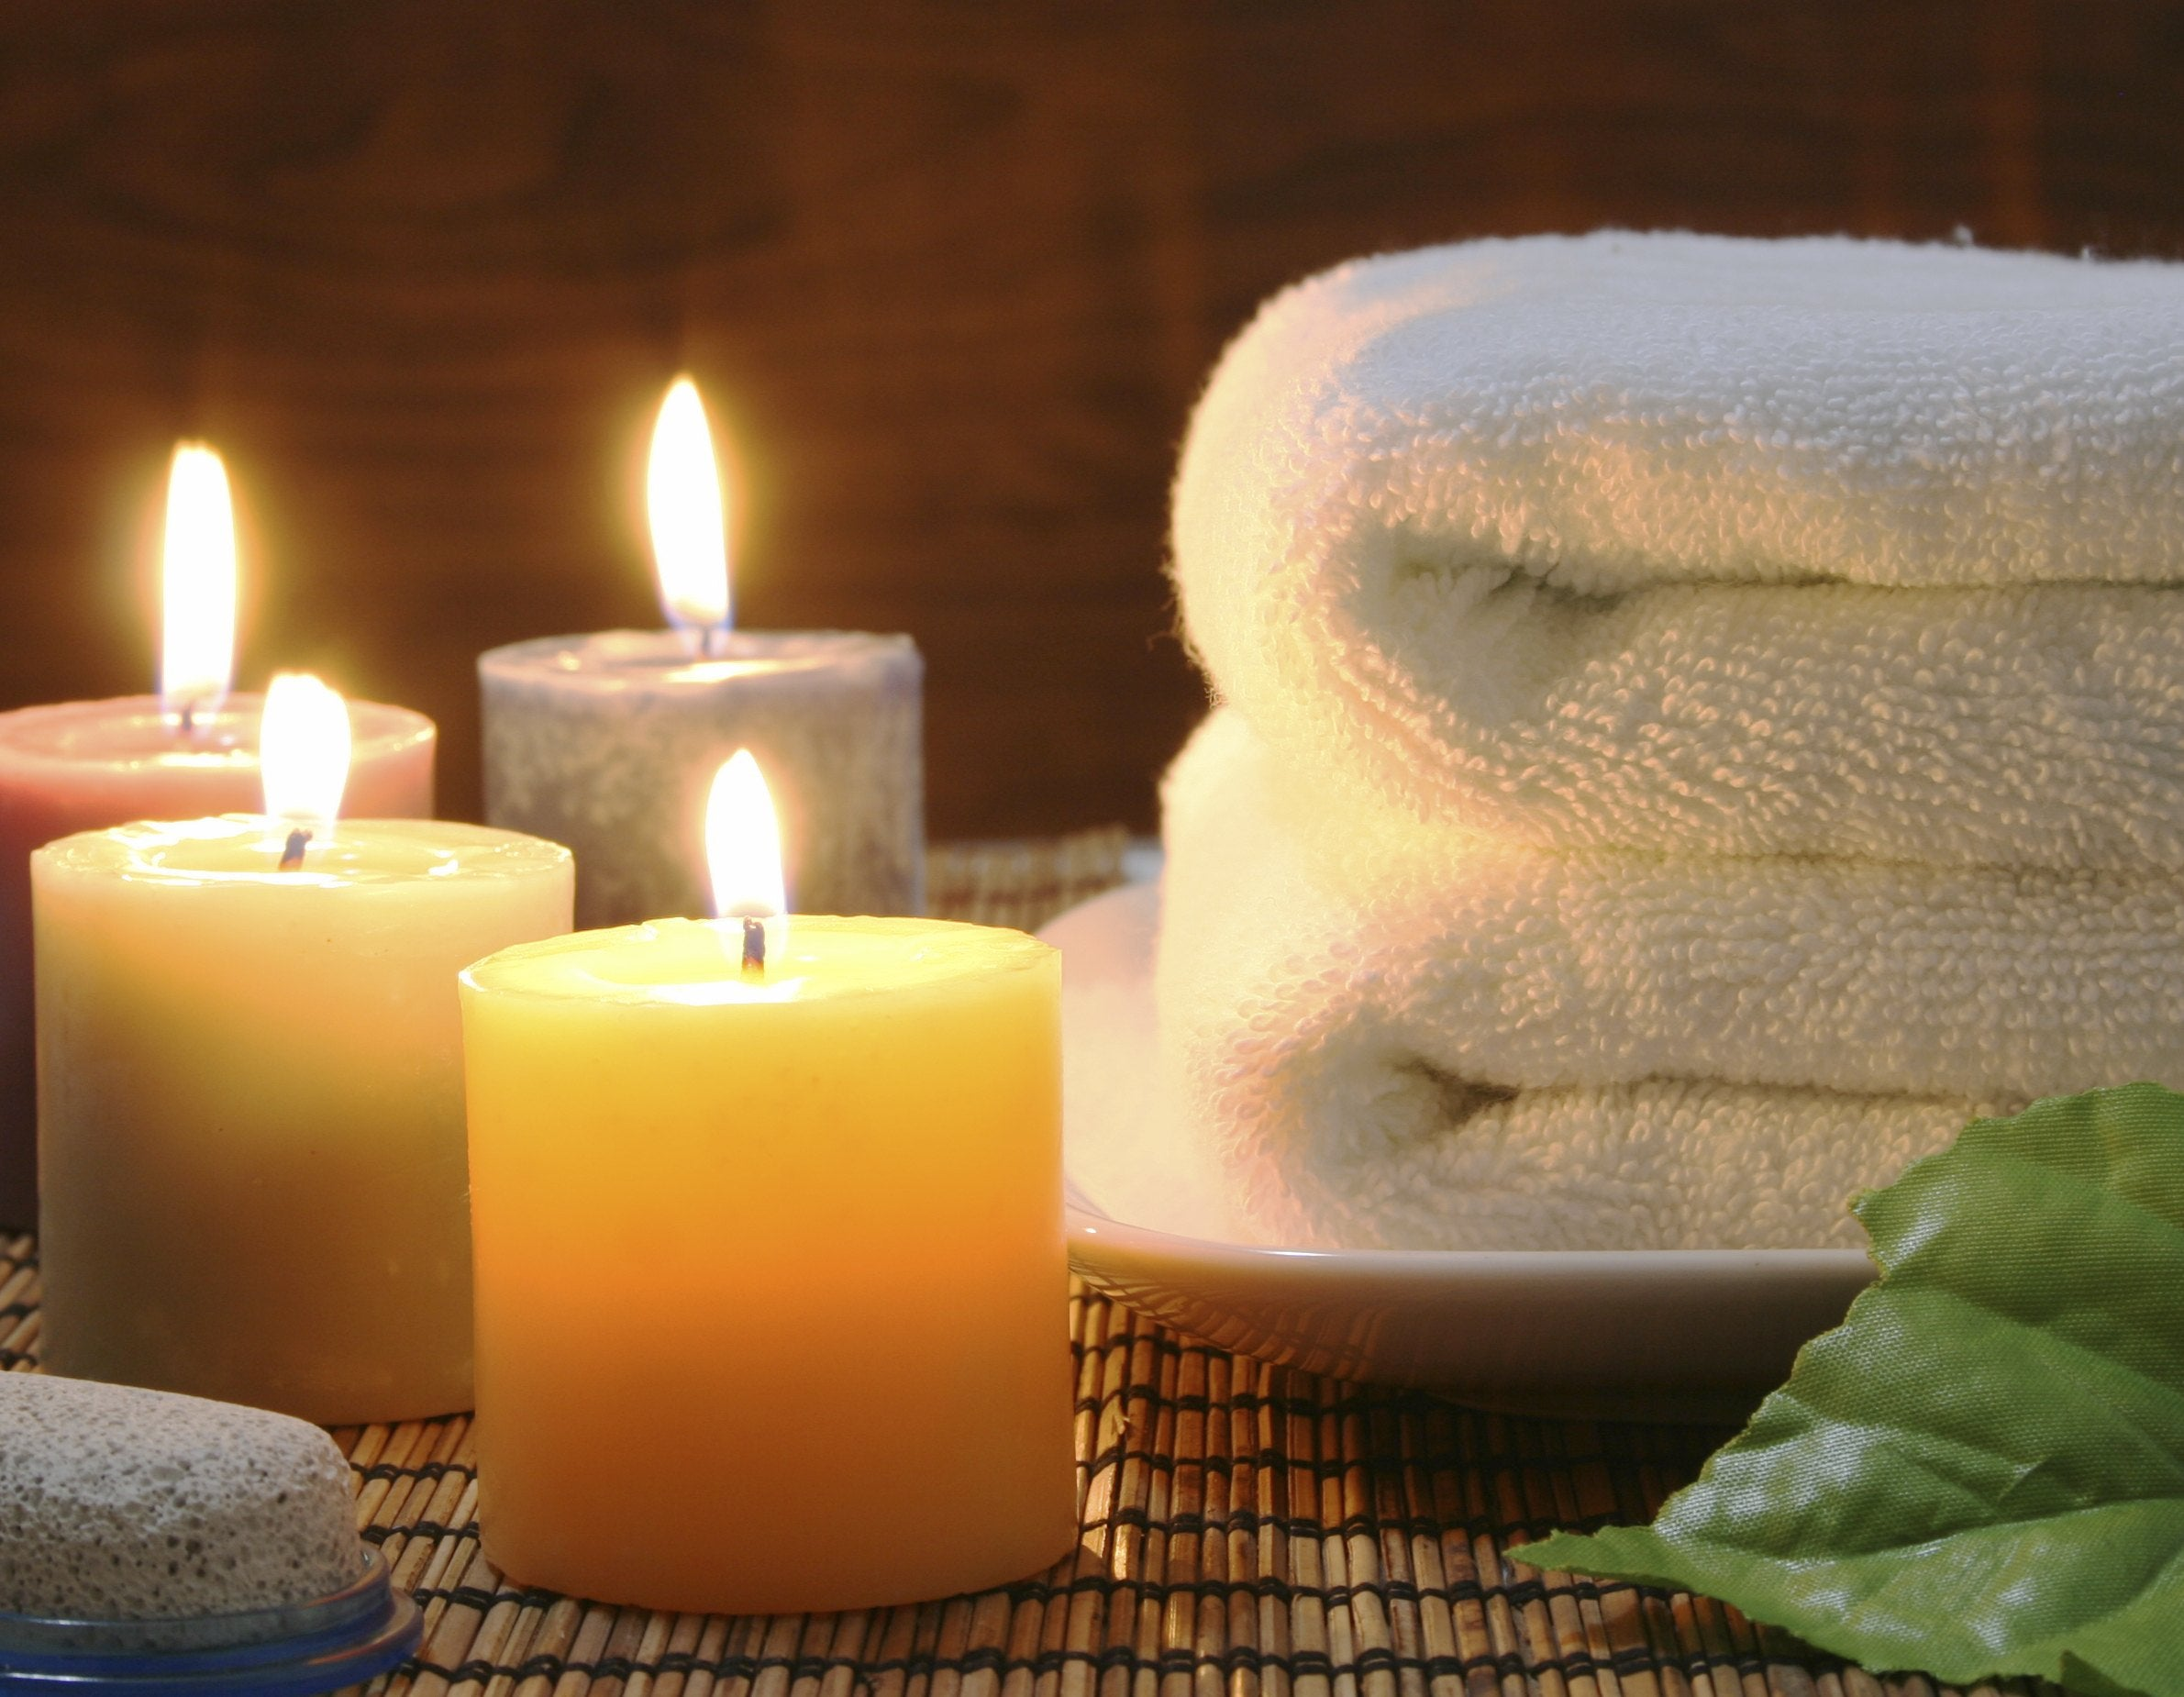 Towel, aromatic candles and other spa objects to make mood relaxing